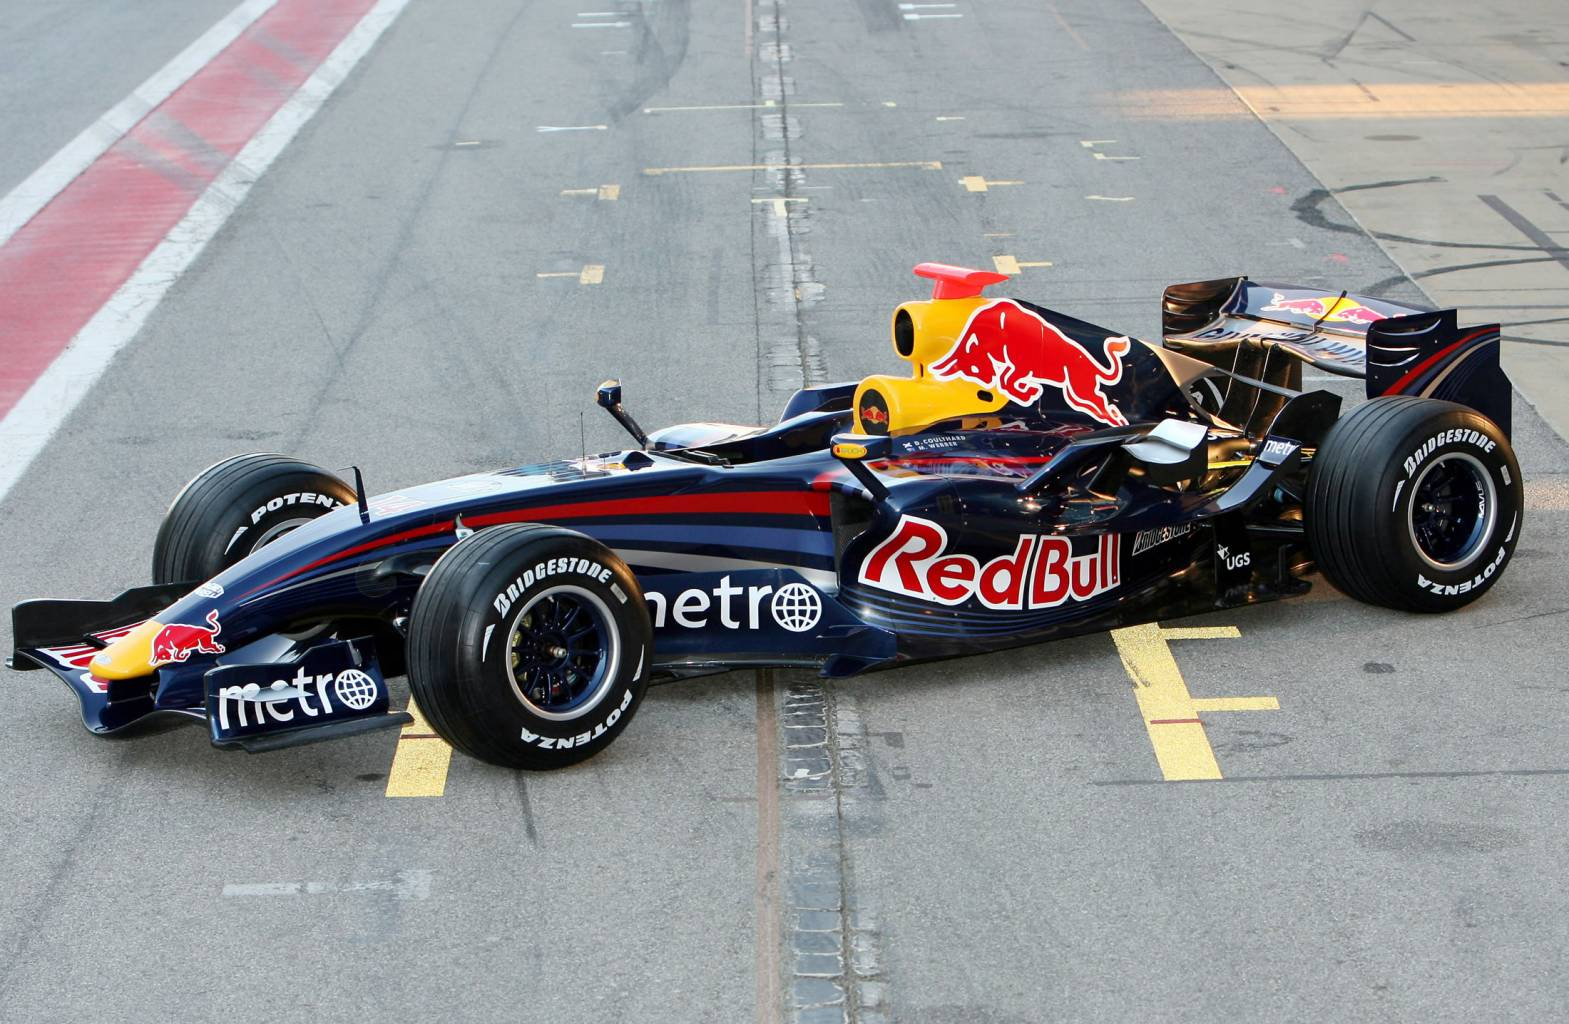 Red bull rb3 photo - 2